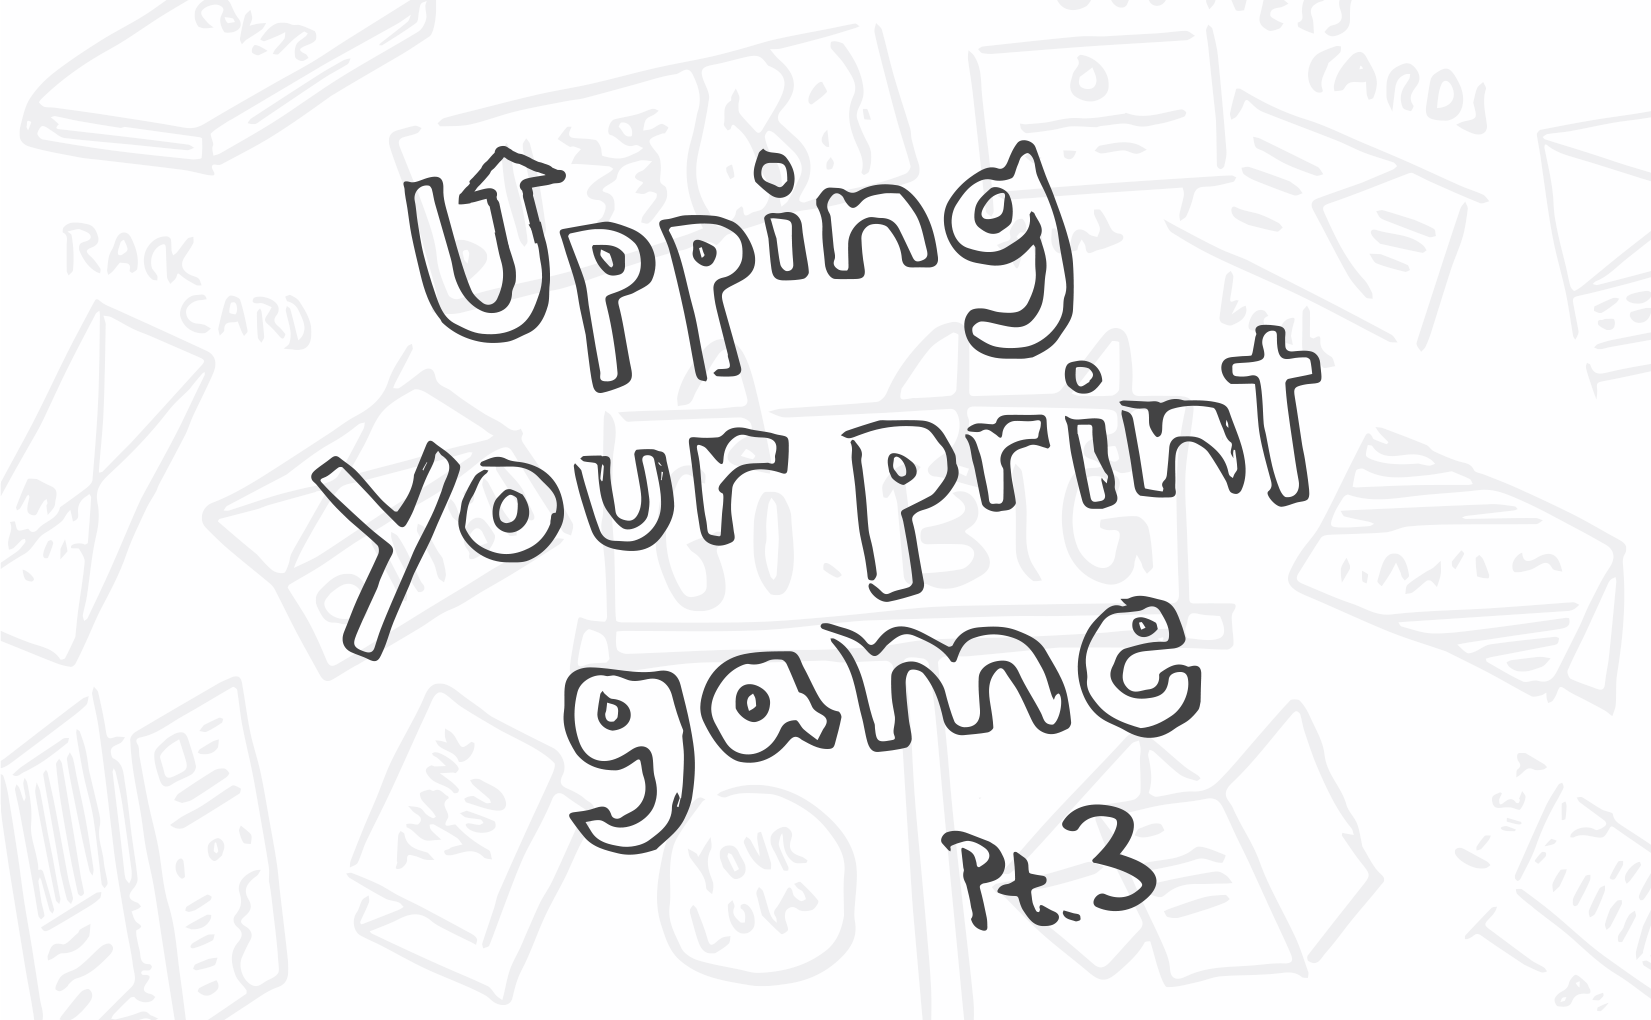 upping your print game part three